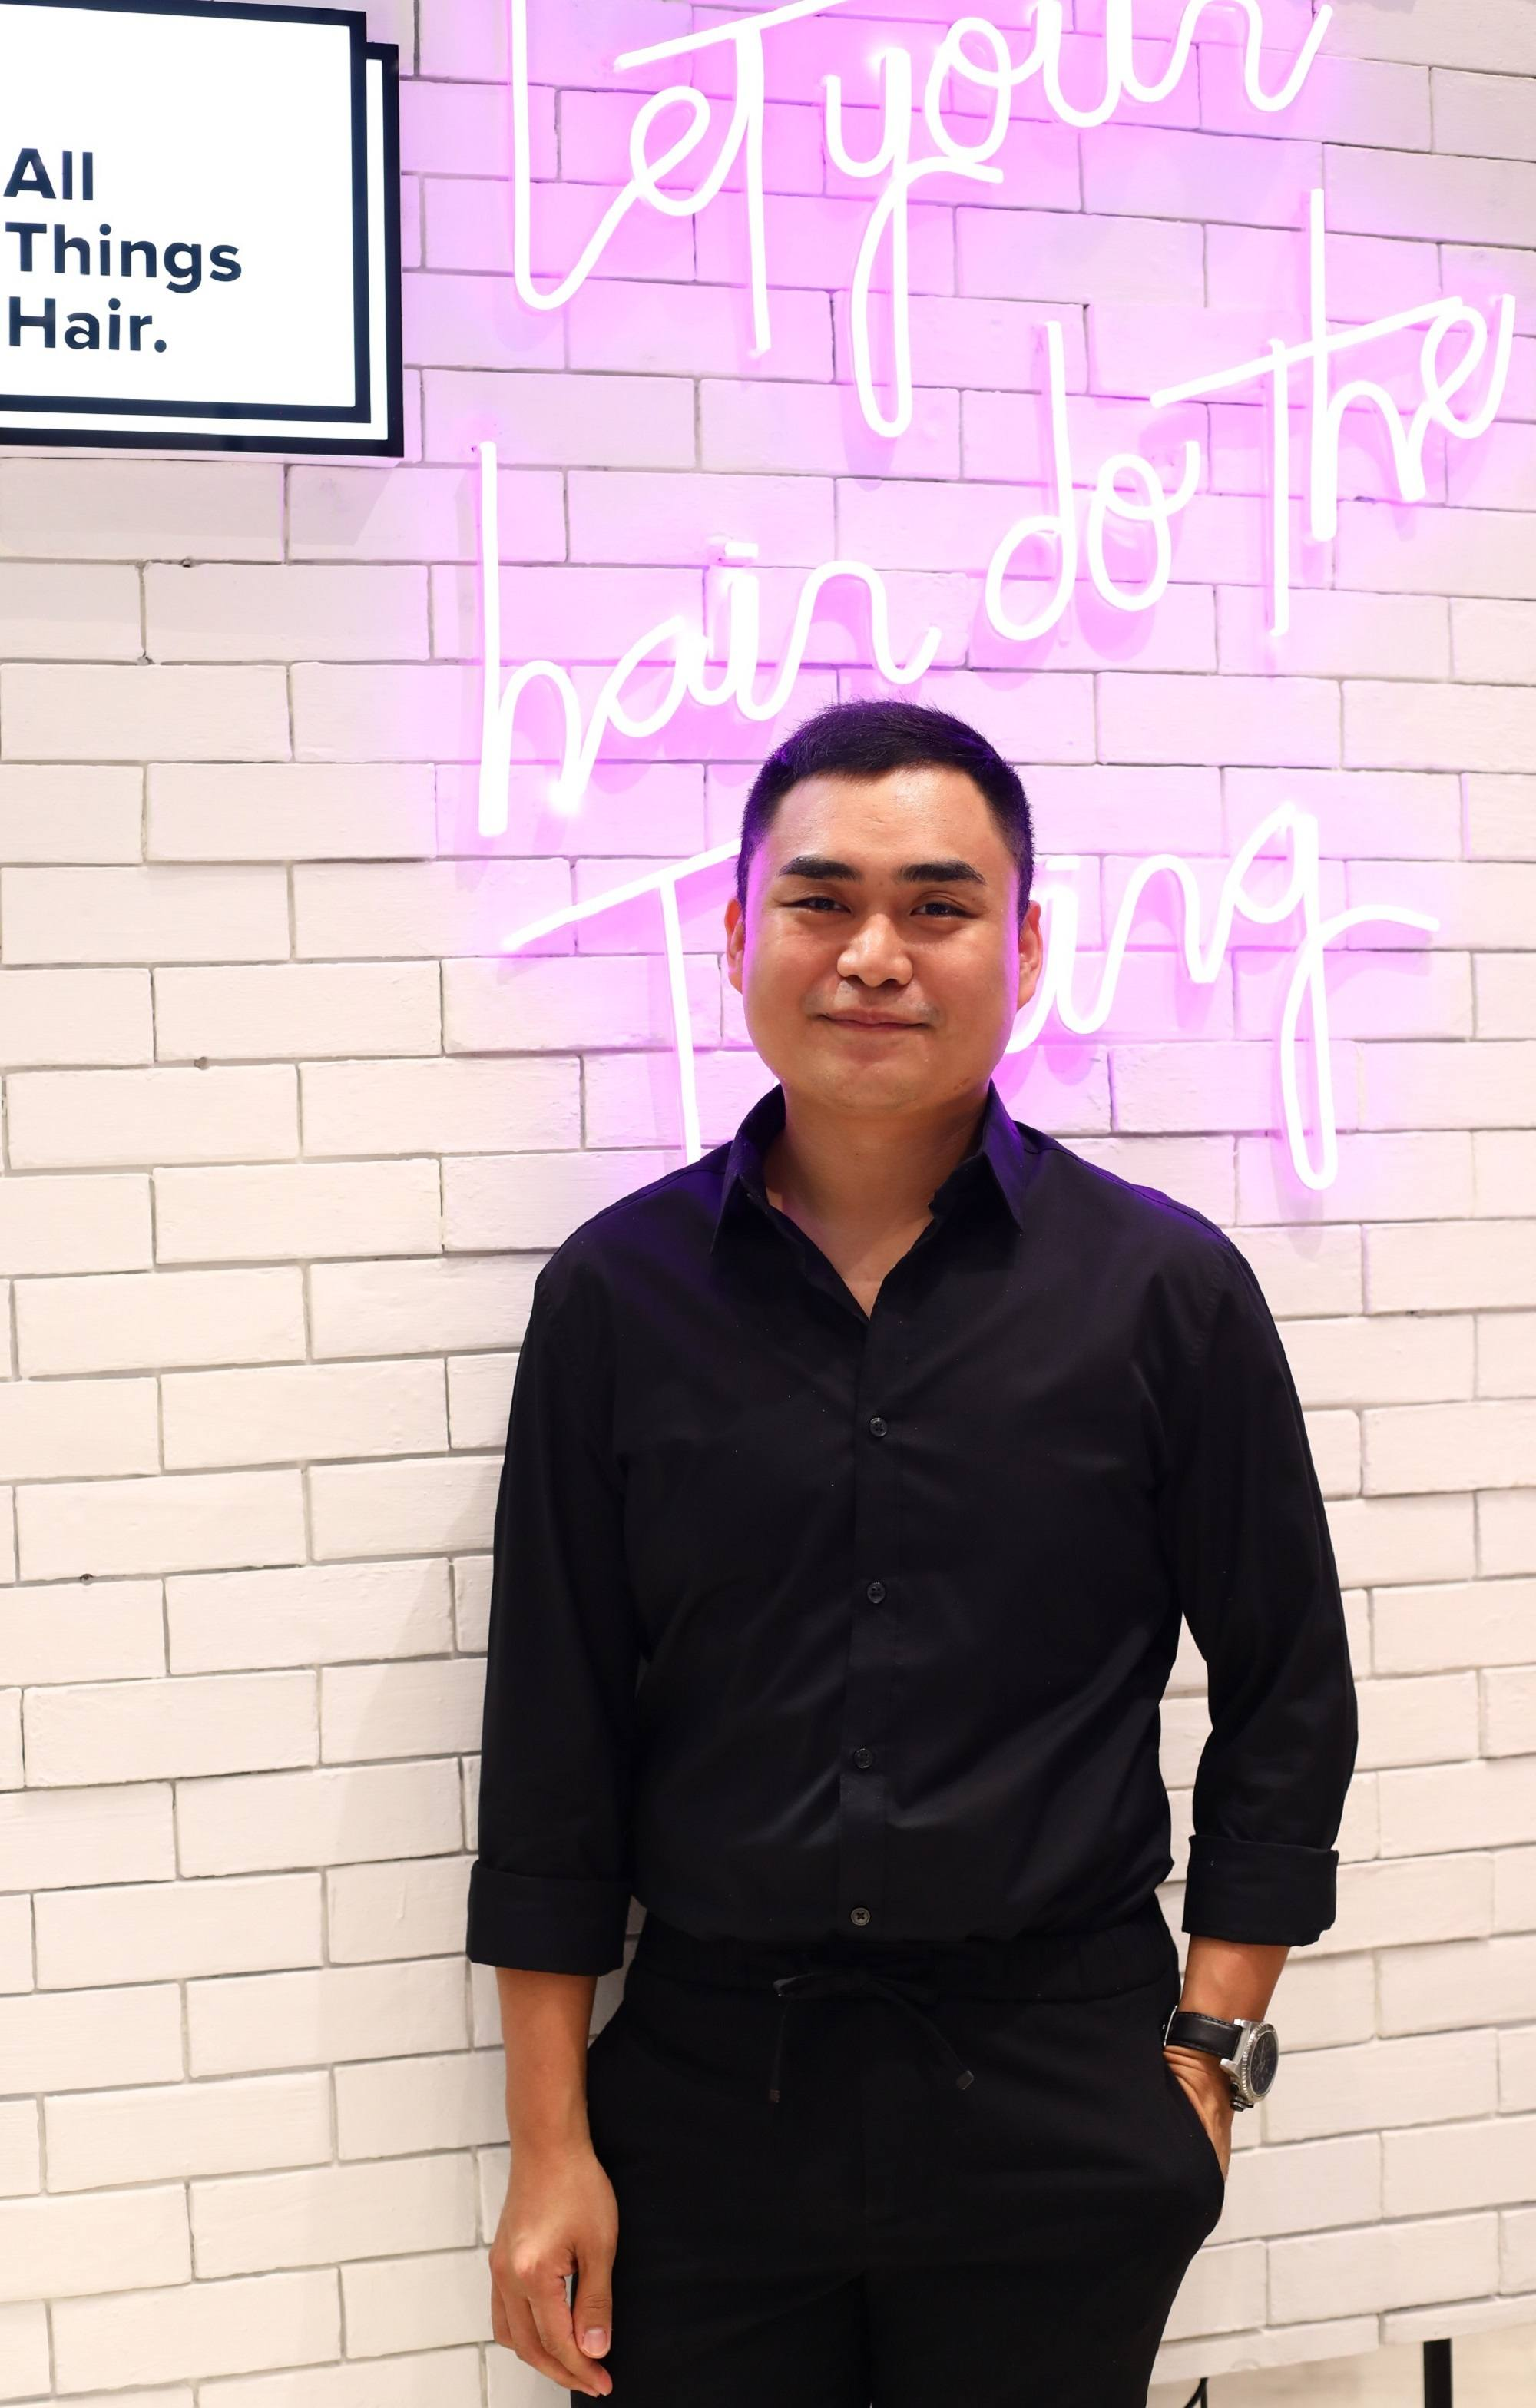 Hairstylist Jay Wee at the All Things Hair Live Booth